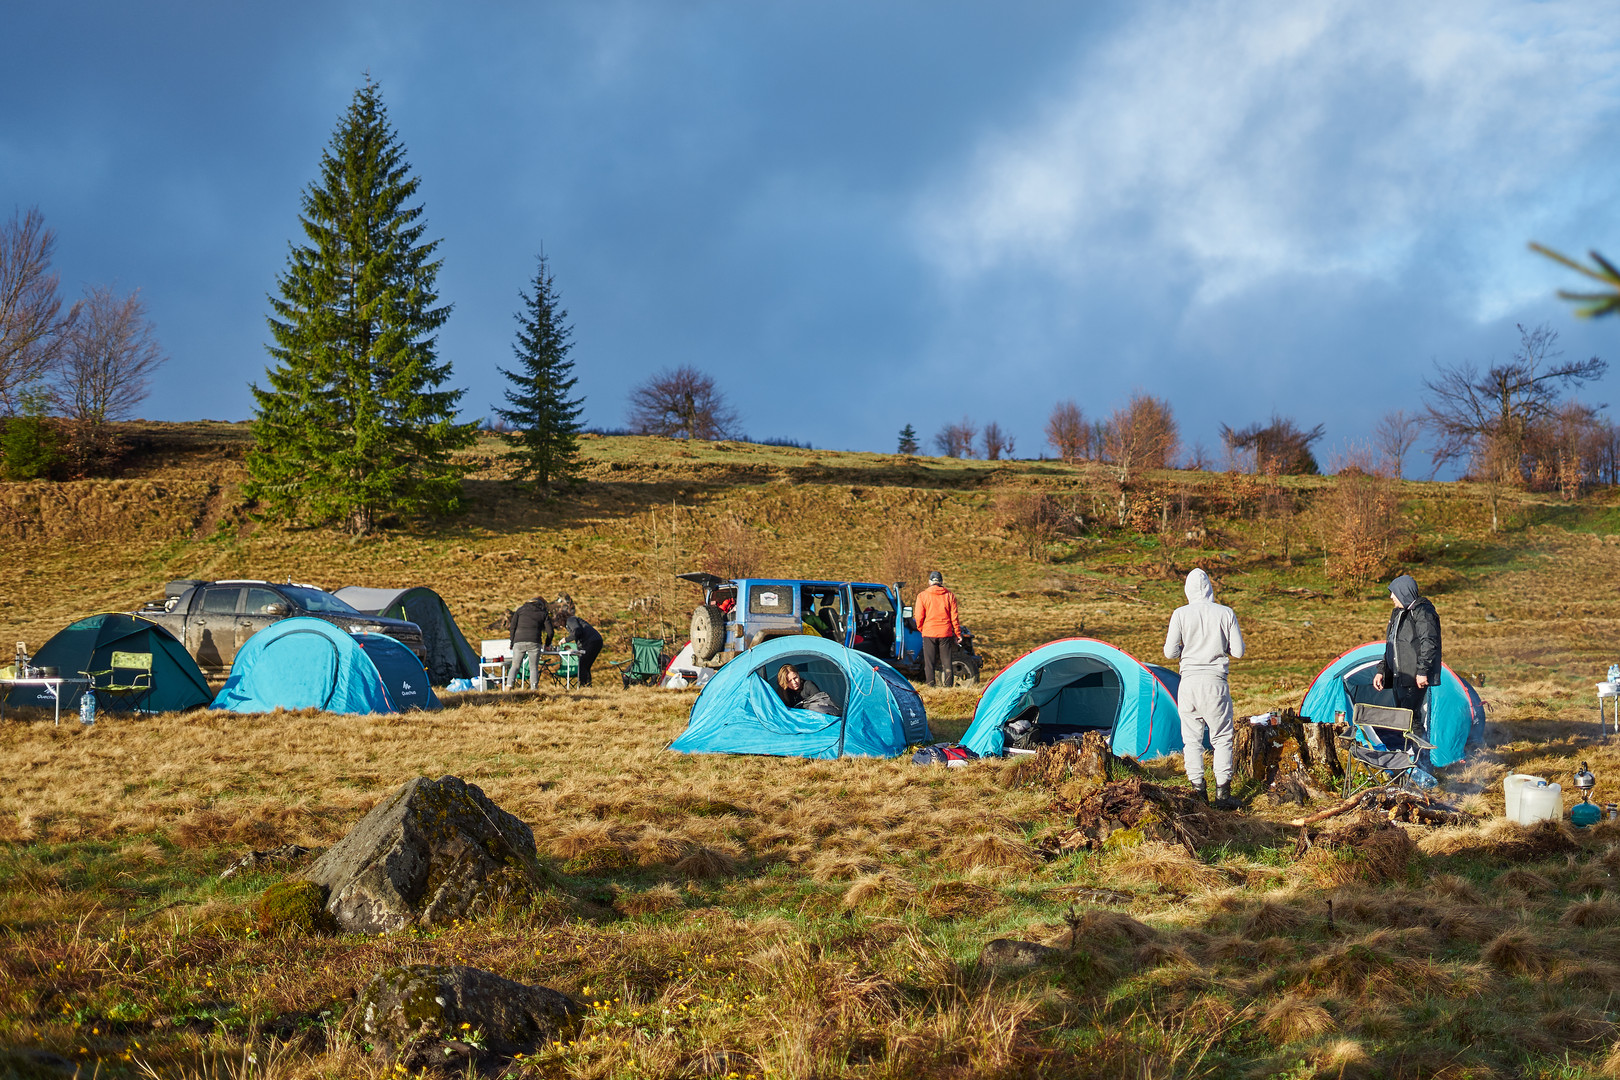 Wild camping in the field